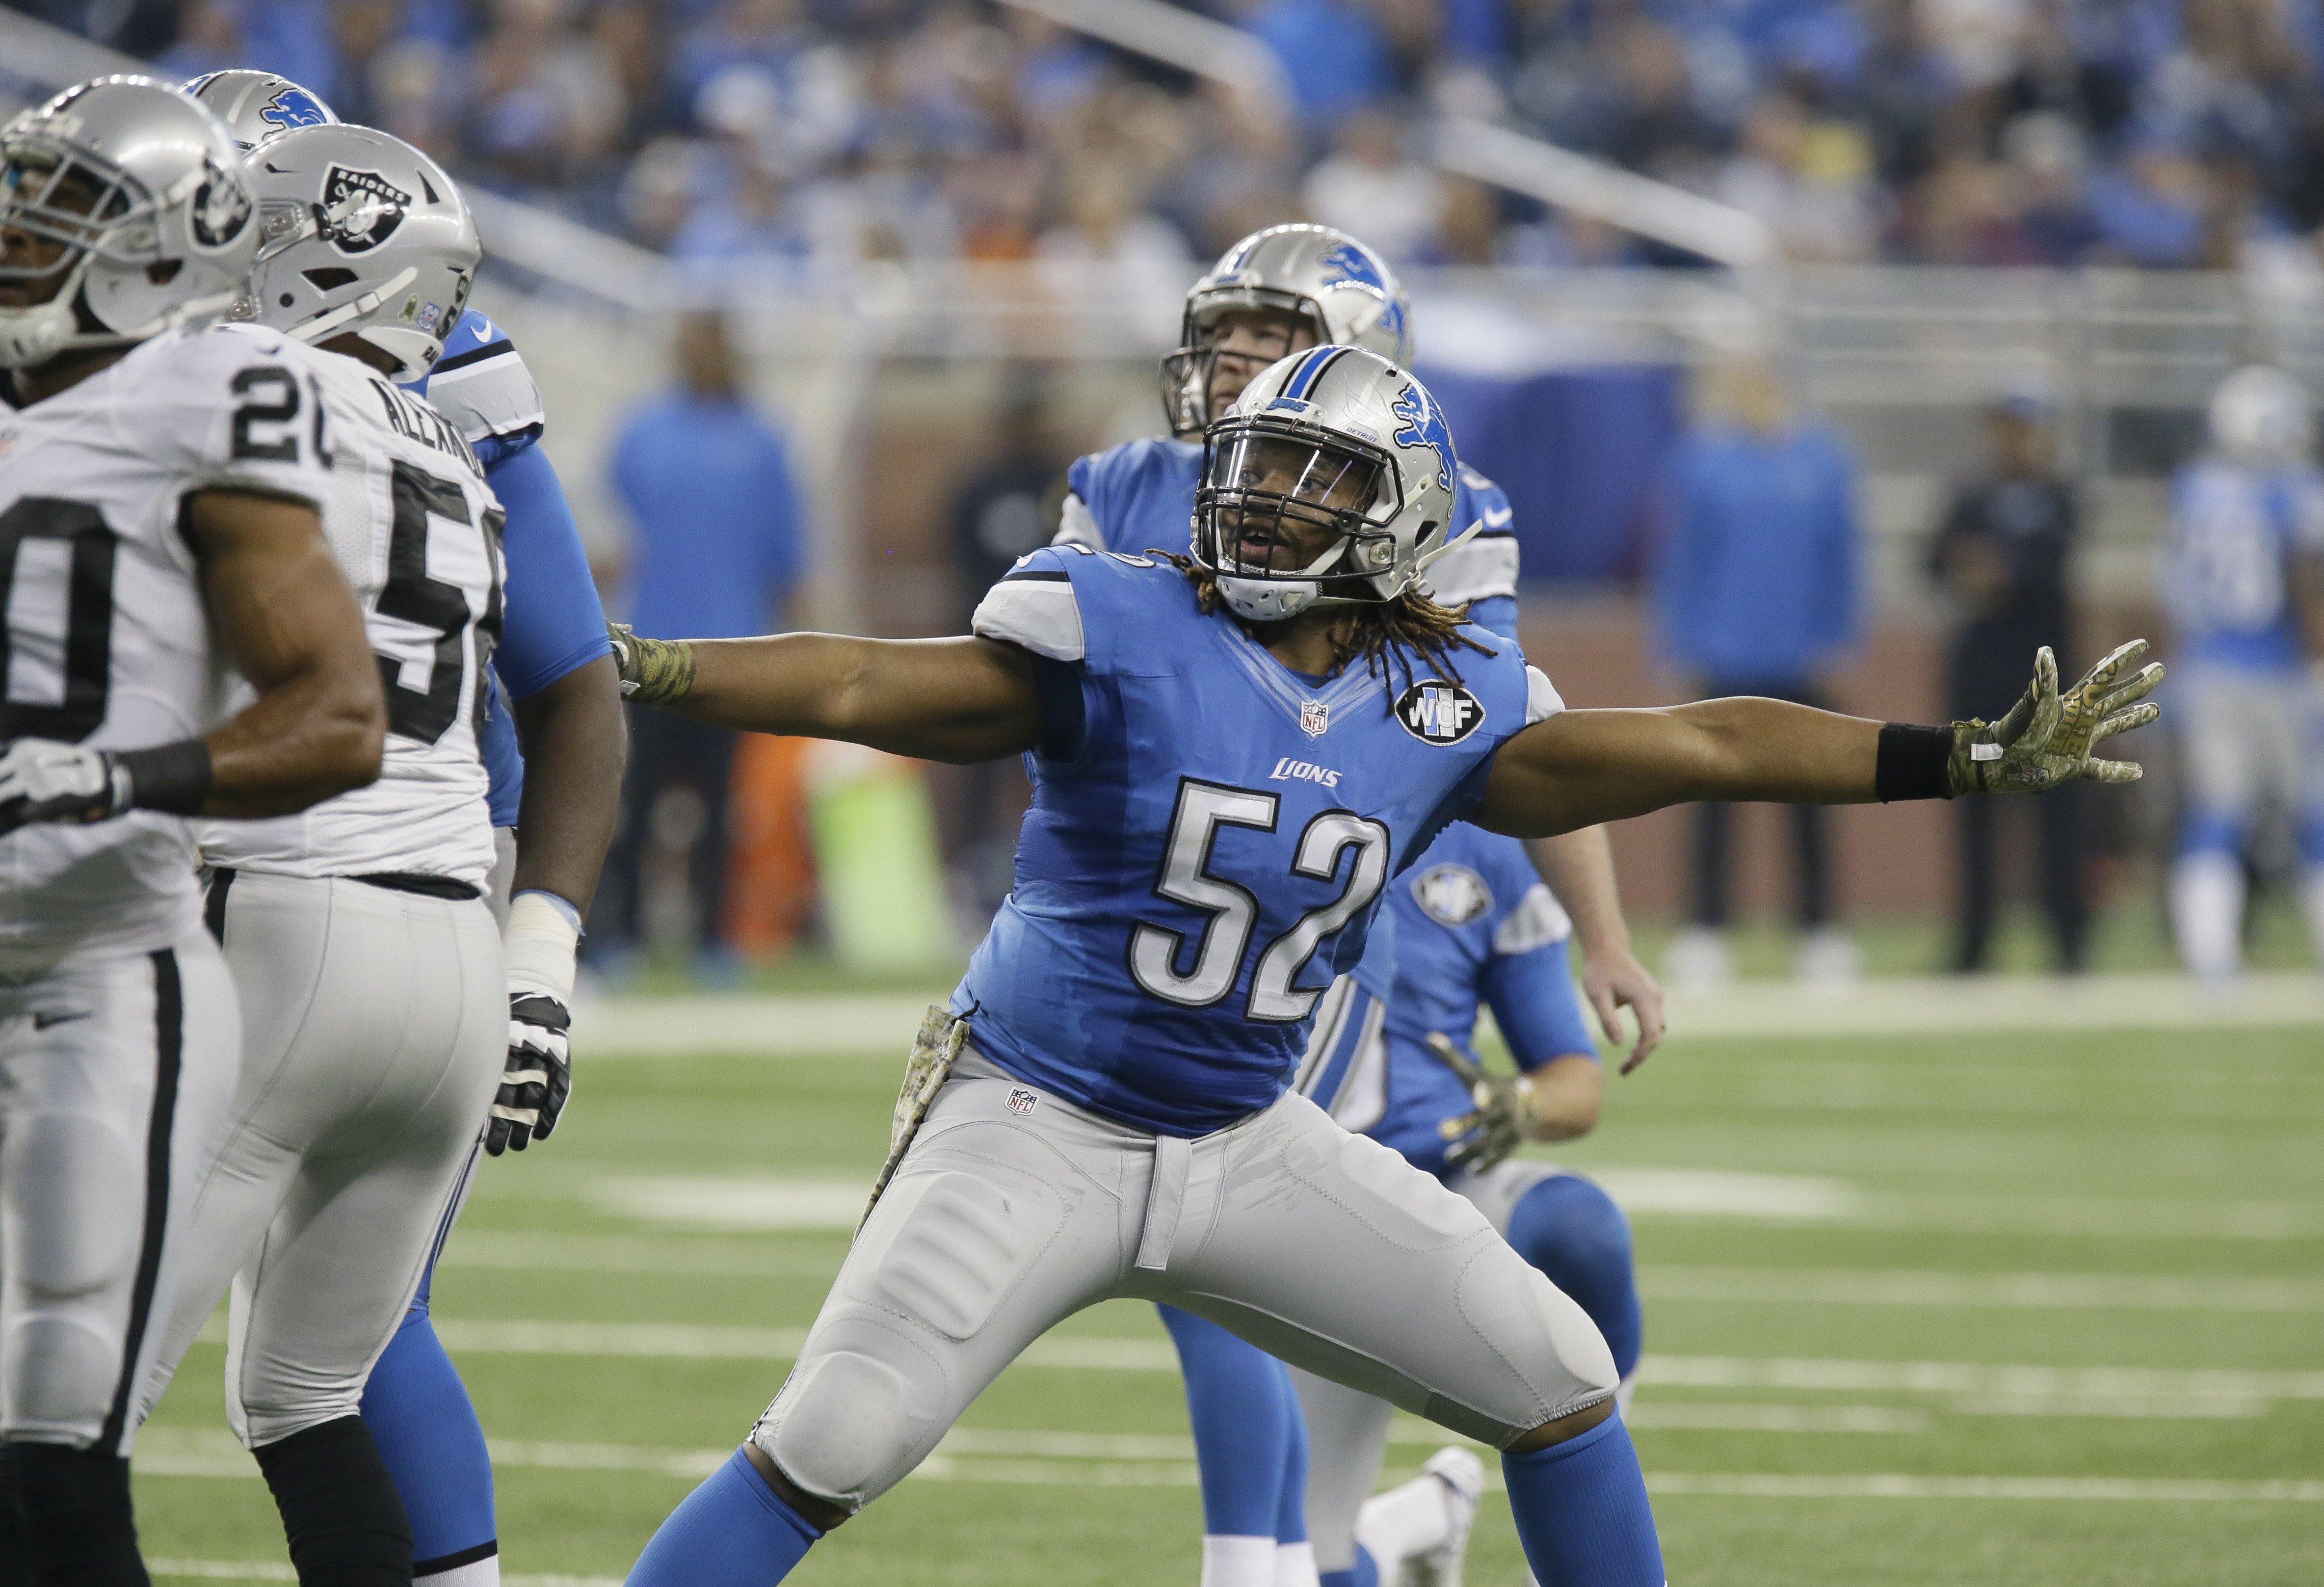 Detroit Lions defensive end Darryl Tapp (52) watches as the field goal by kicker Matt Prater clears the posts during the first half of an NFL football game against the Oakland Raiders, Sunday, Nov. 22, 2015, in Detroit. (AP Photo/Duane Burleson)